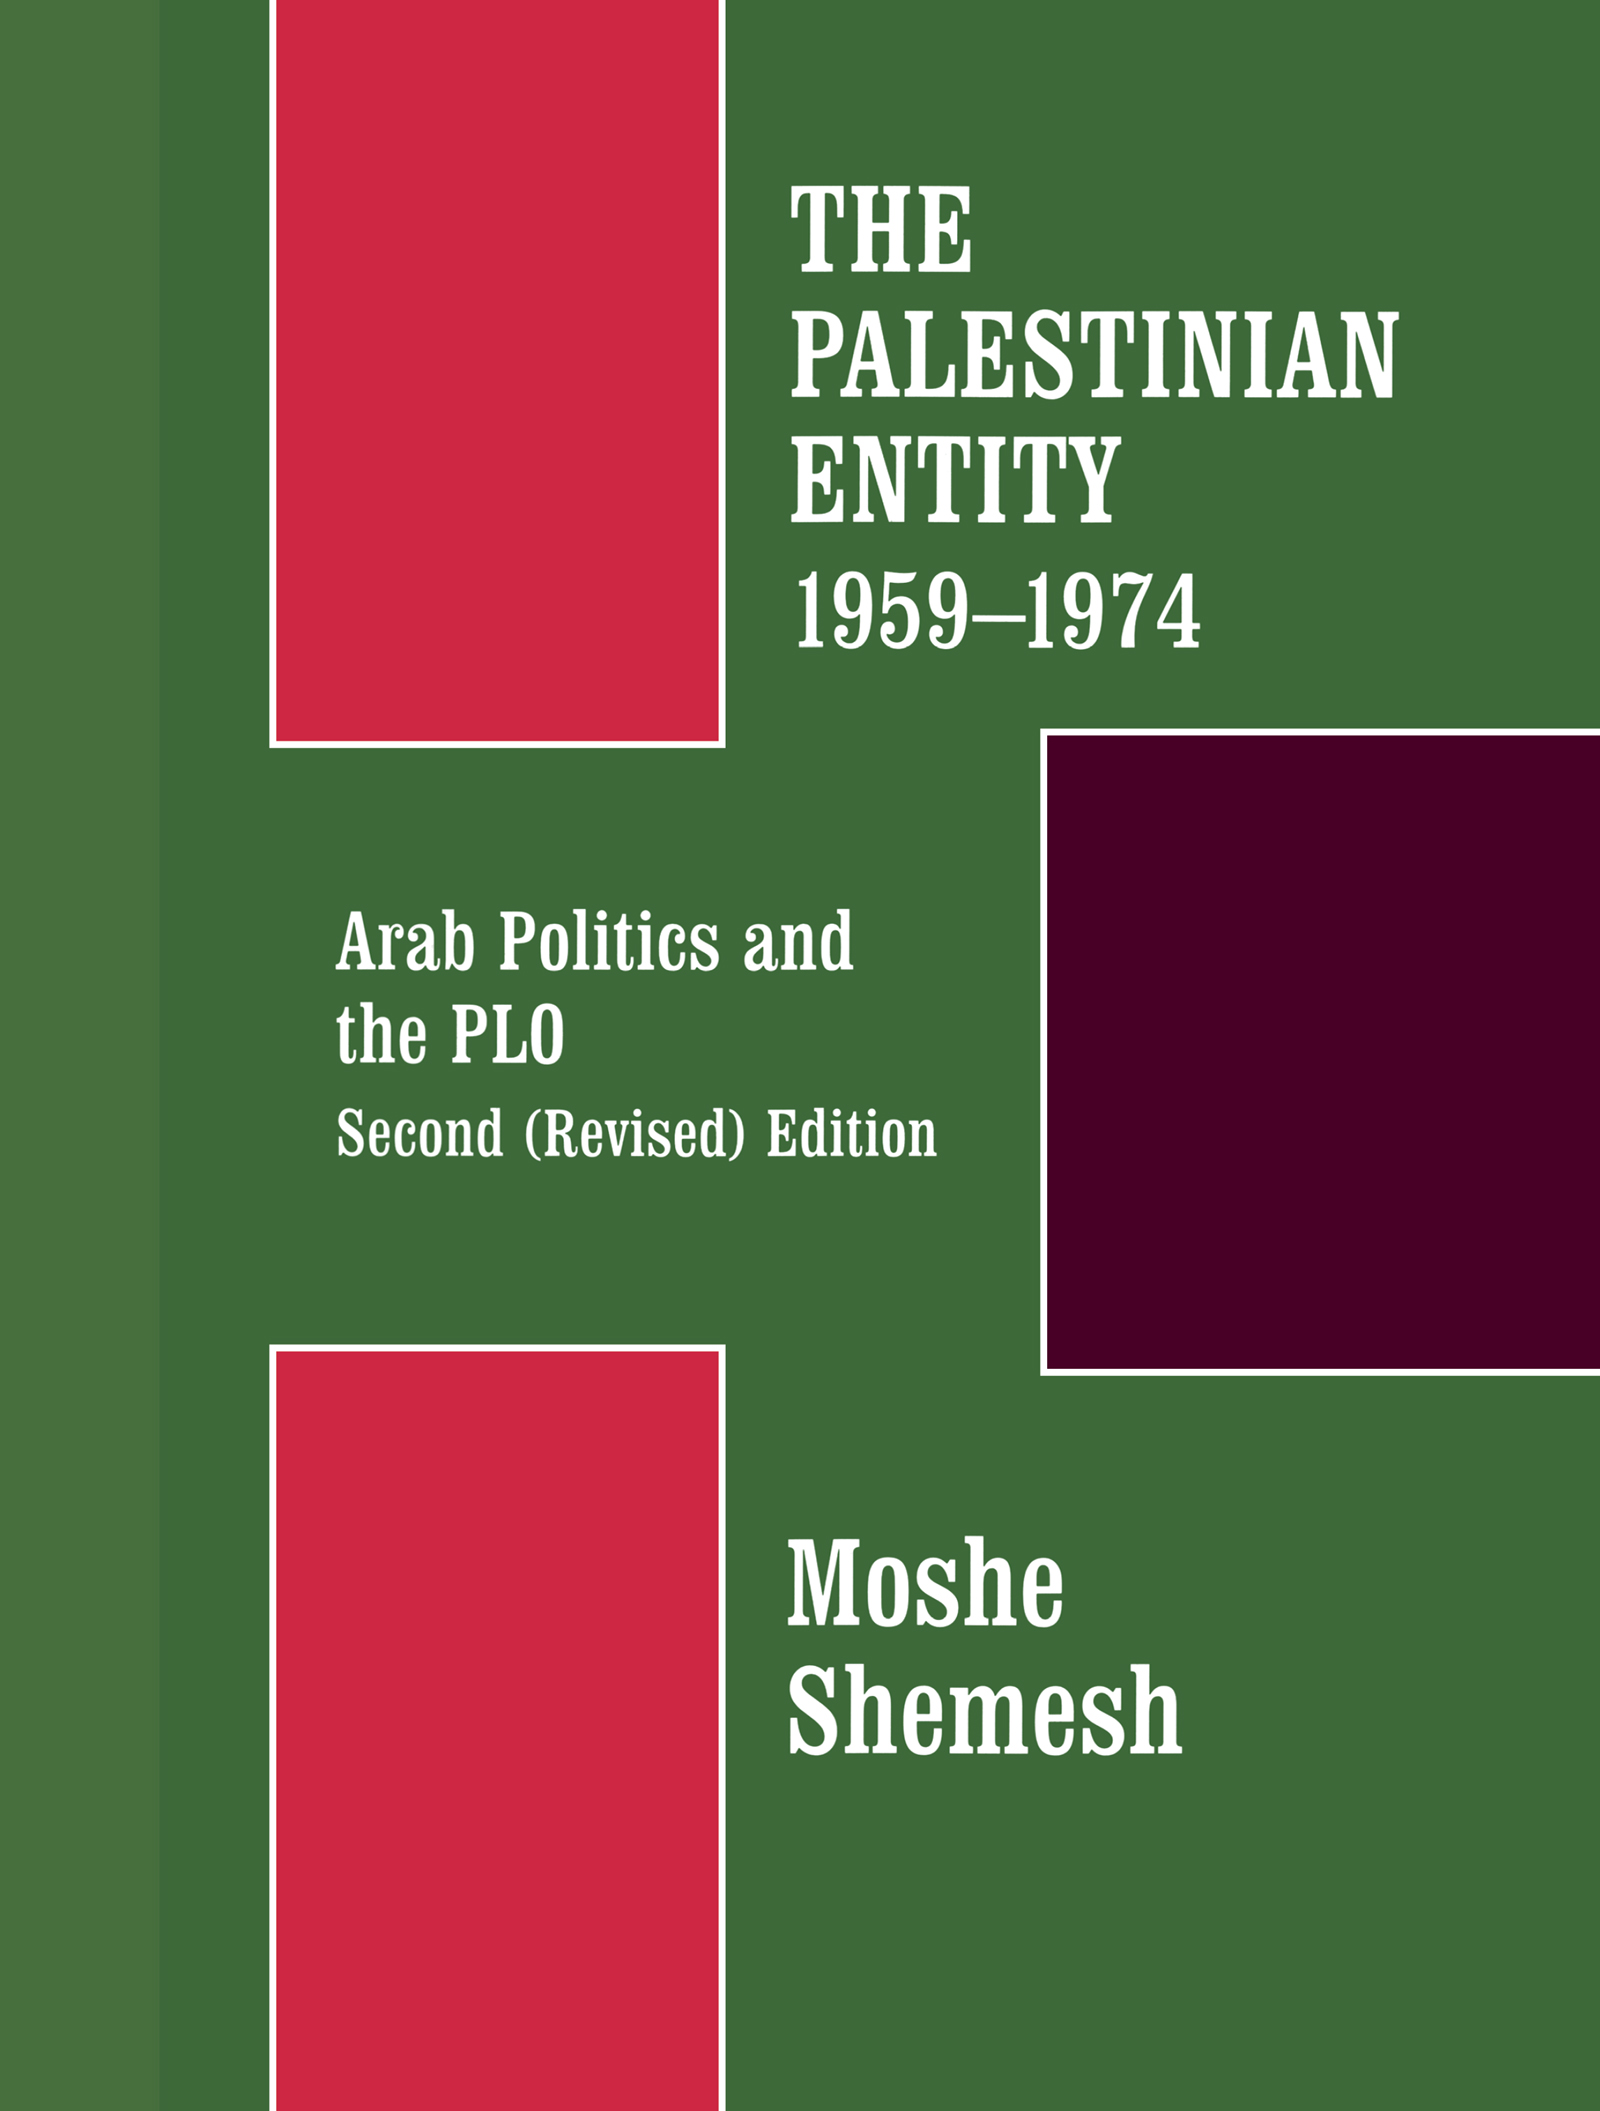 The Palestinian Entity 1959-1974